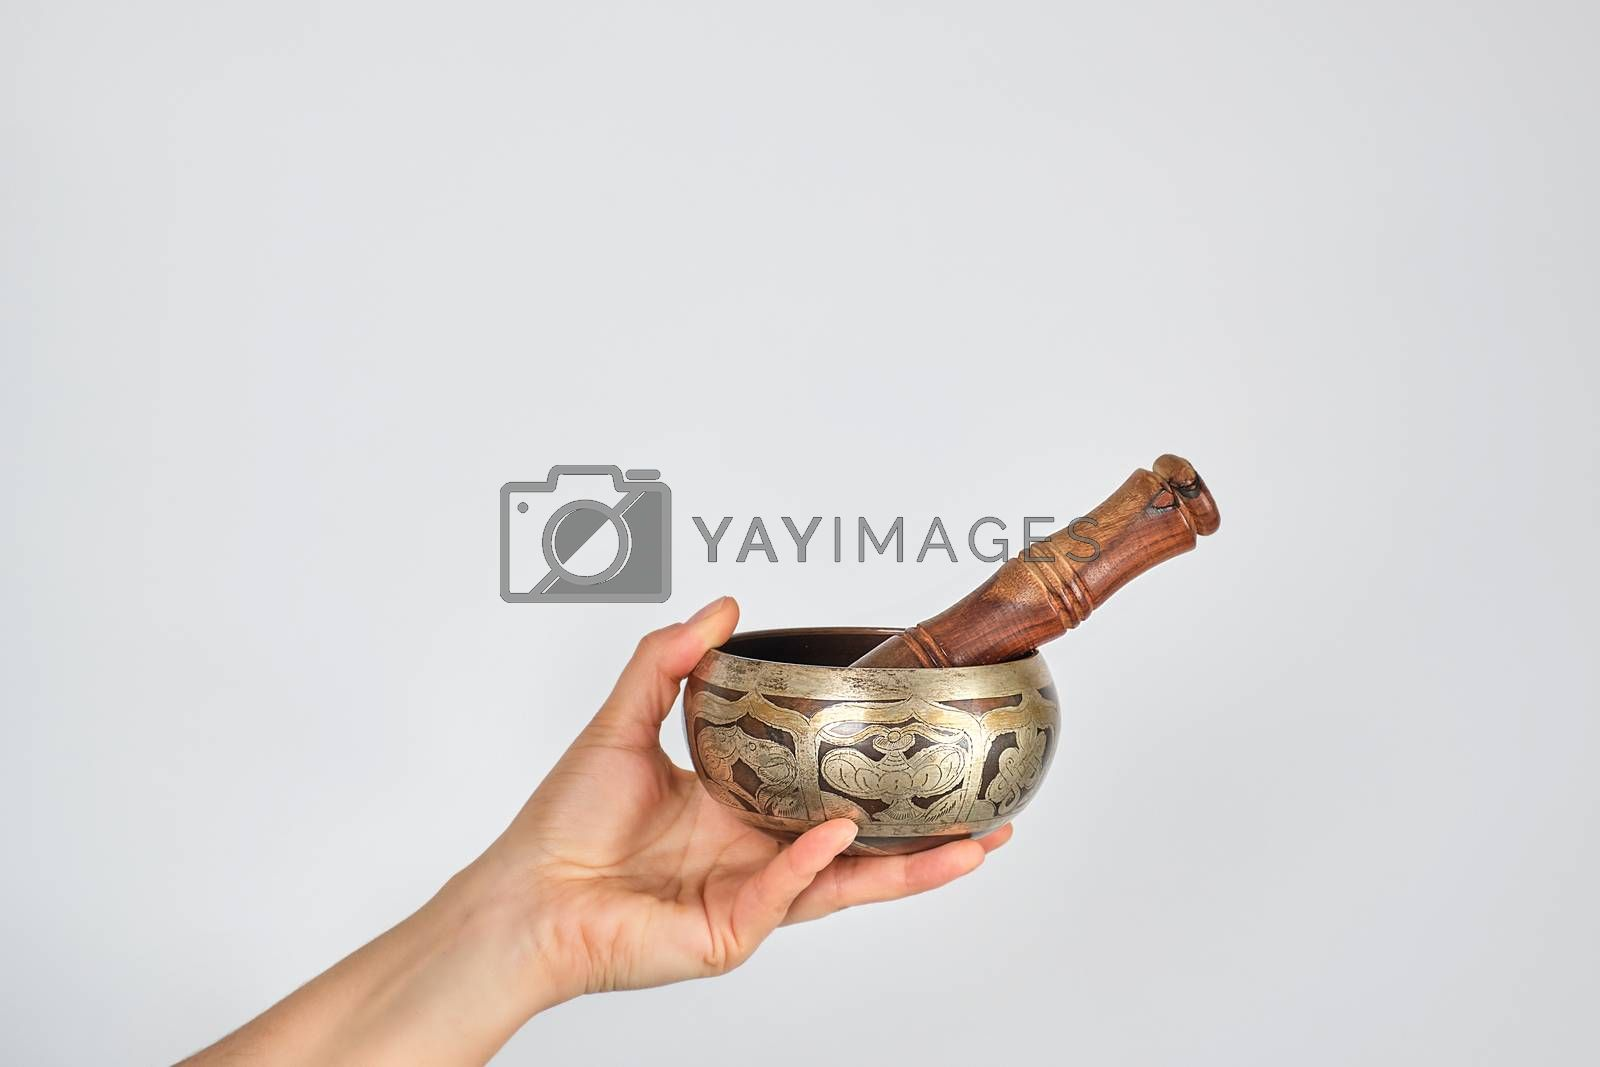 copper singing bowl and wooden stick in female hand  by ndanko